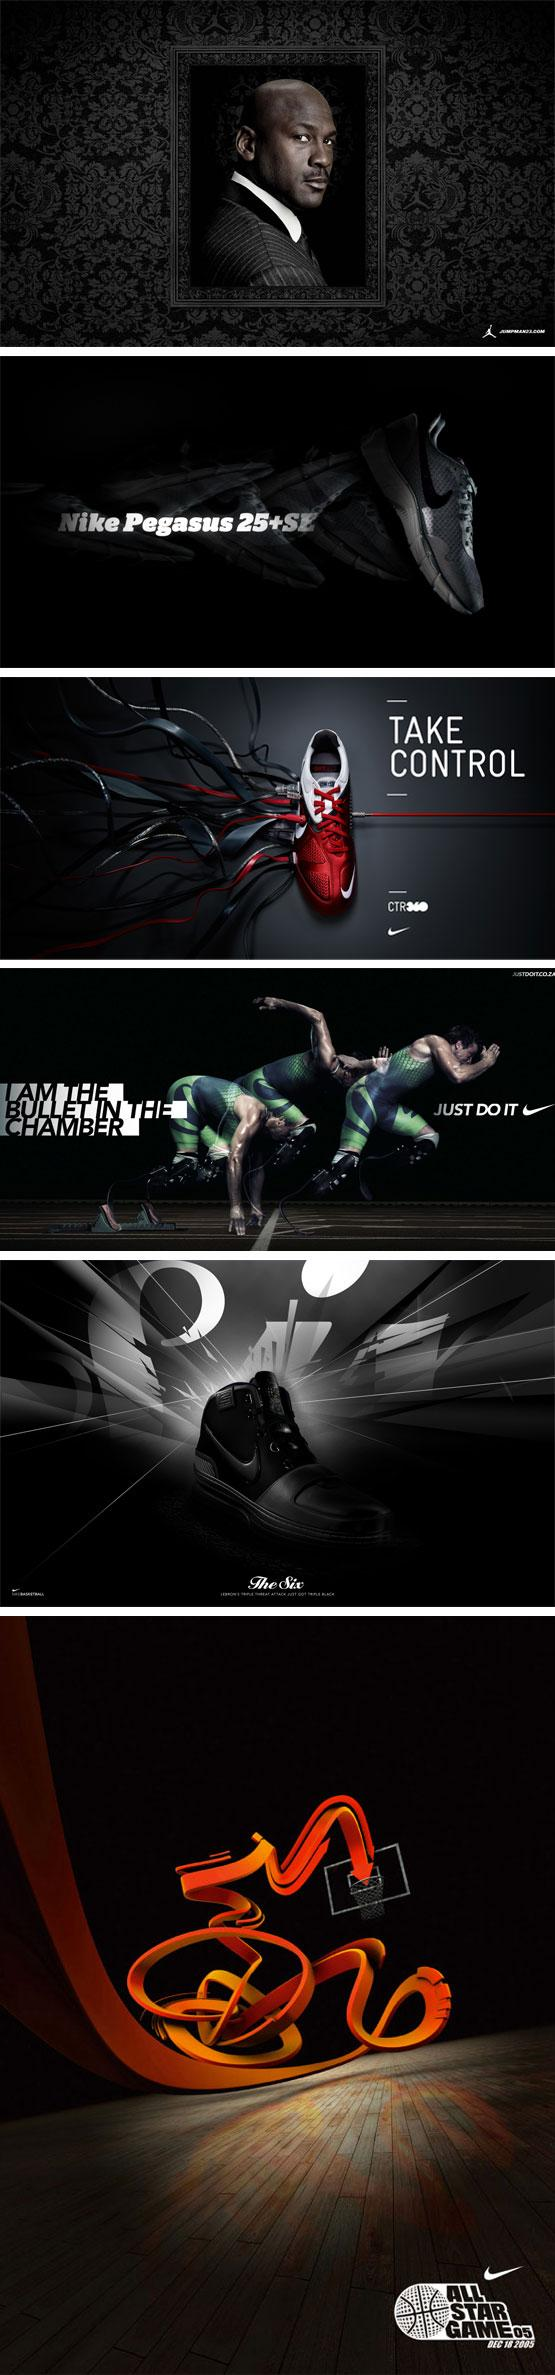 Sélection inspiration #2 Nike black | MRG LAB BLOG creative experience